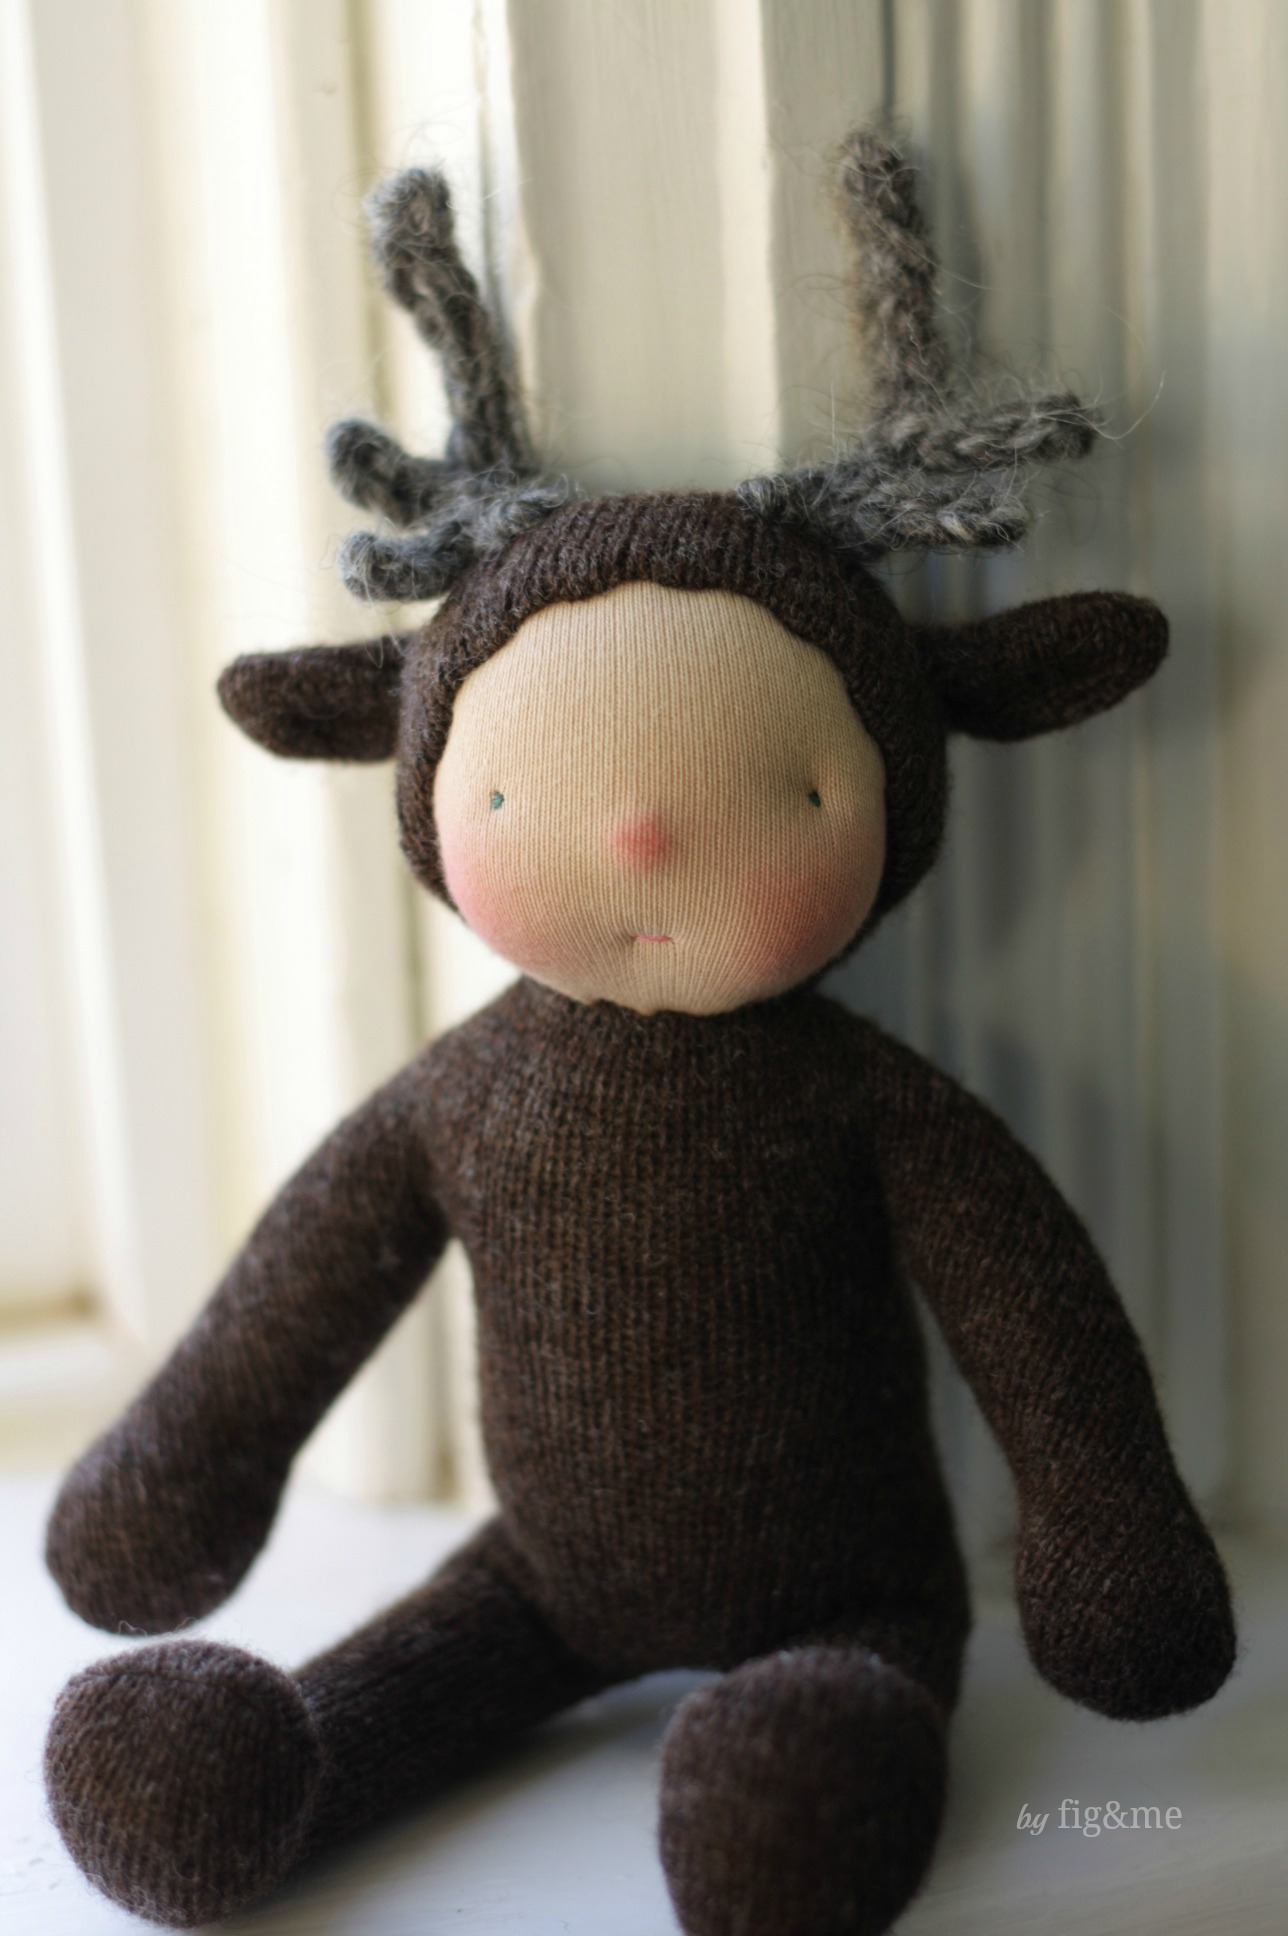 Little Reindeer Baby, by Fig&me.